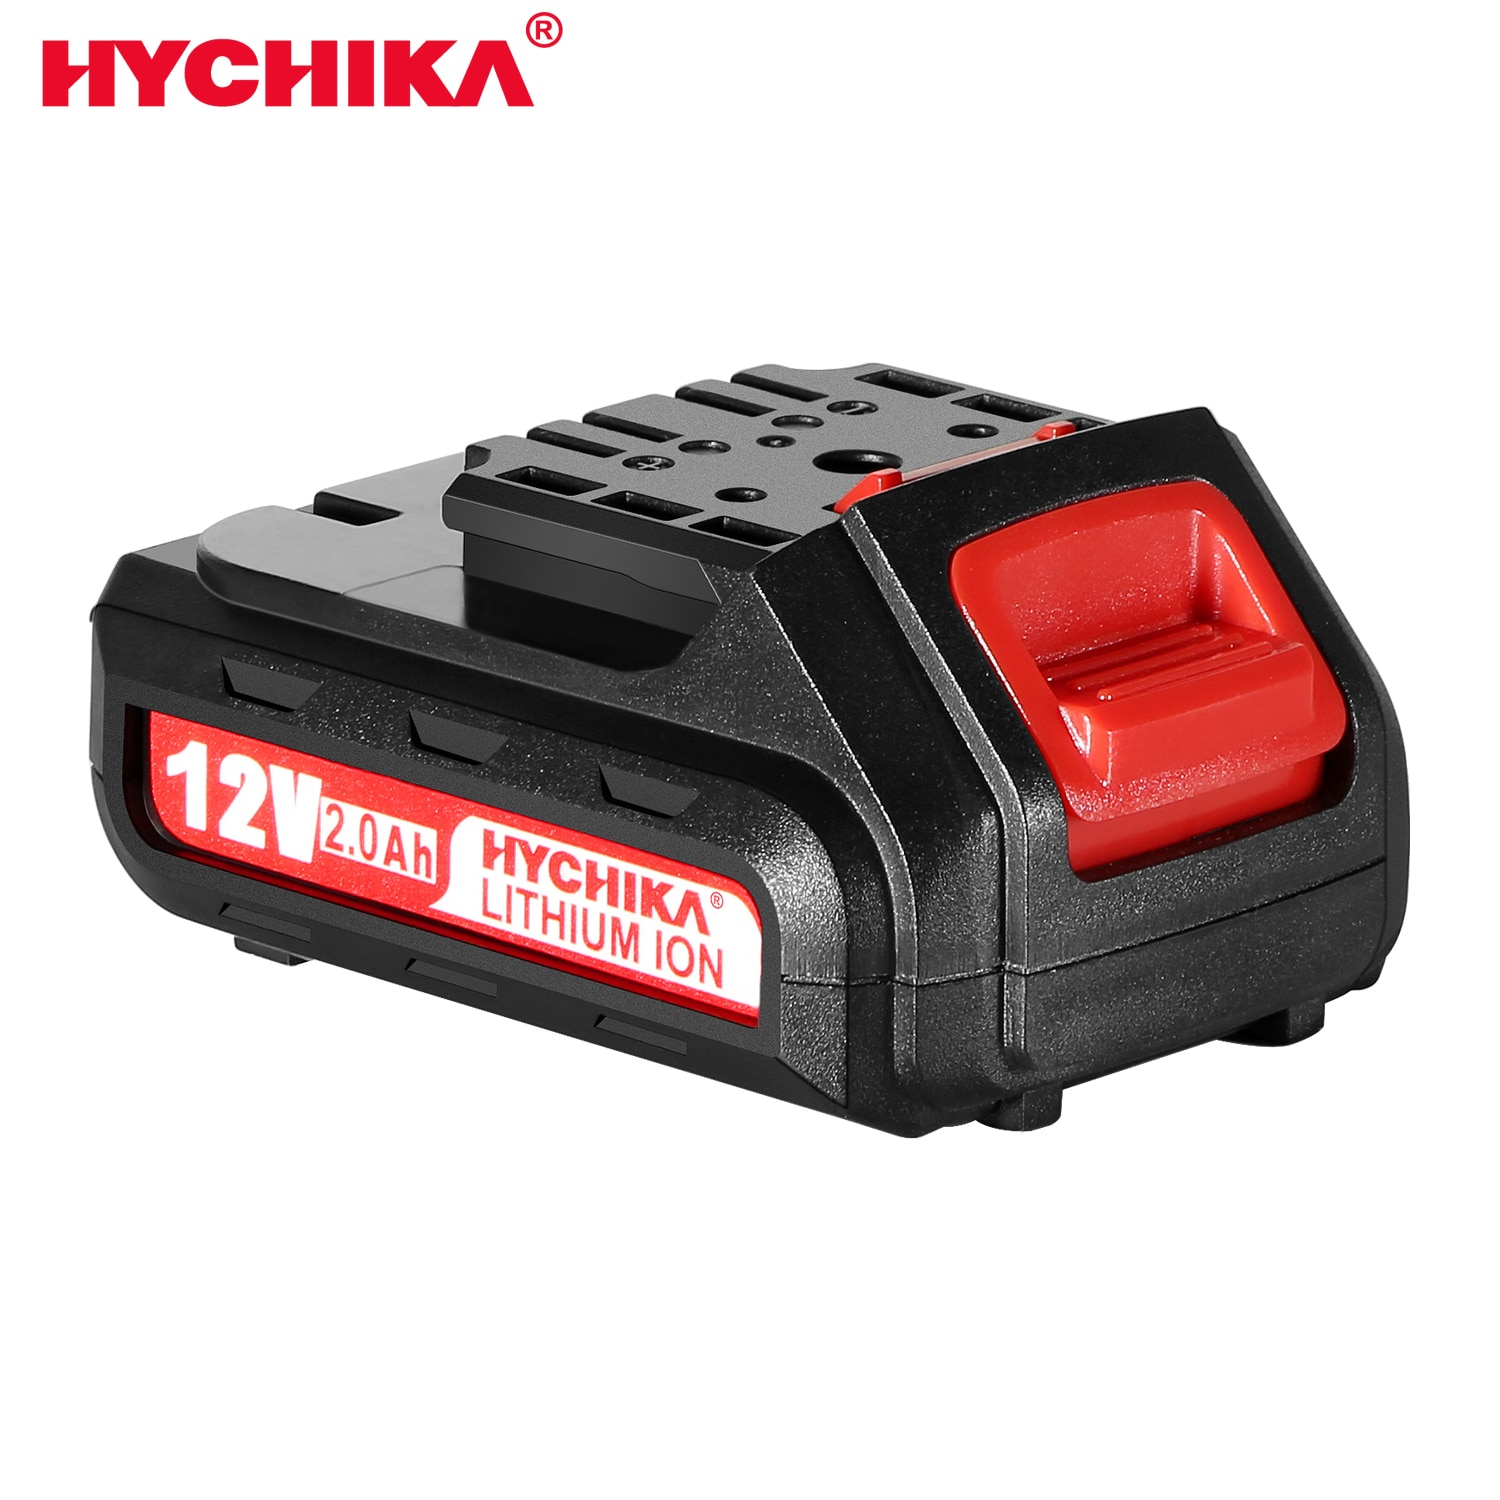 HYCHIKA 12V 2000mAh Lithium Battery for Electric Drill